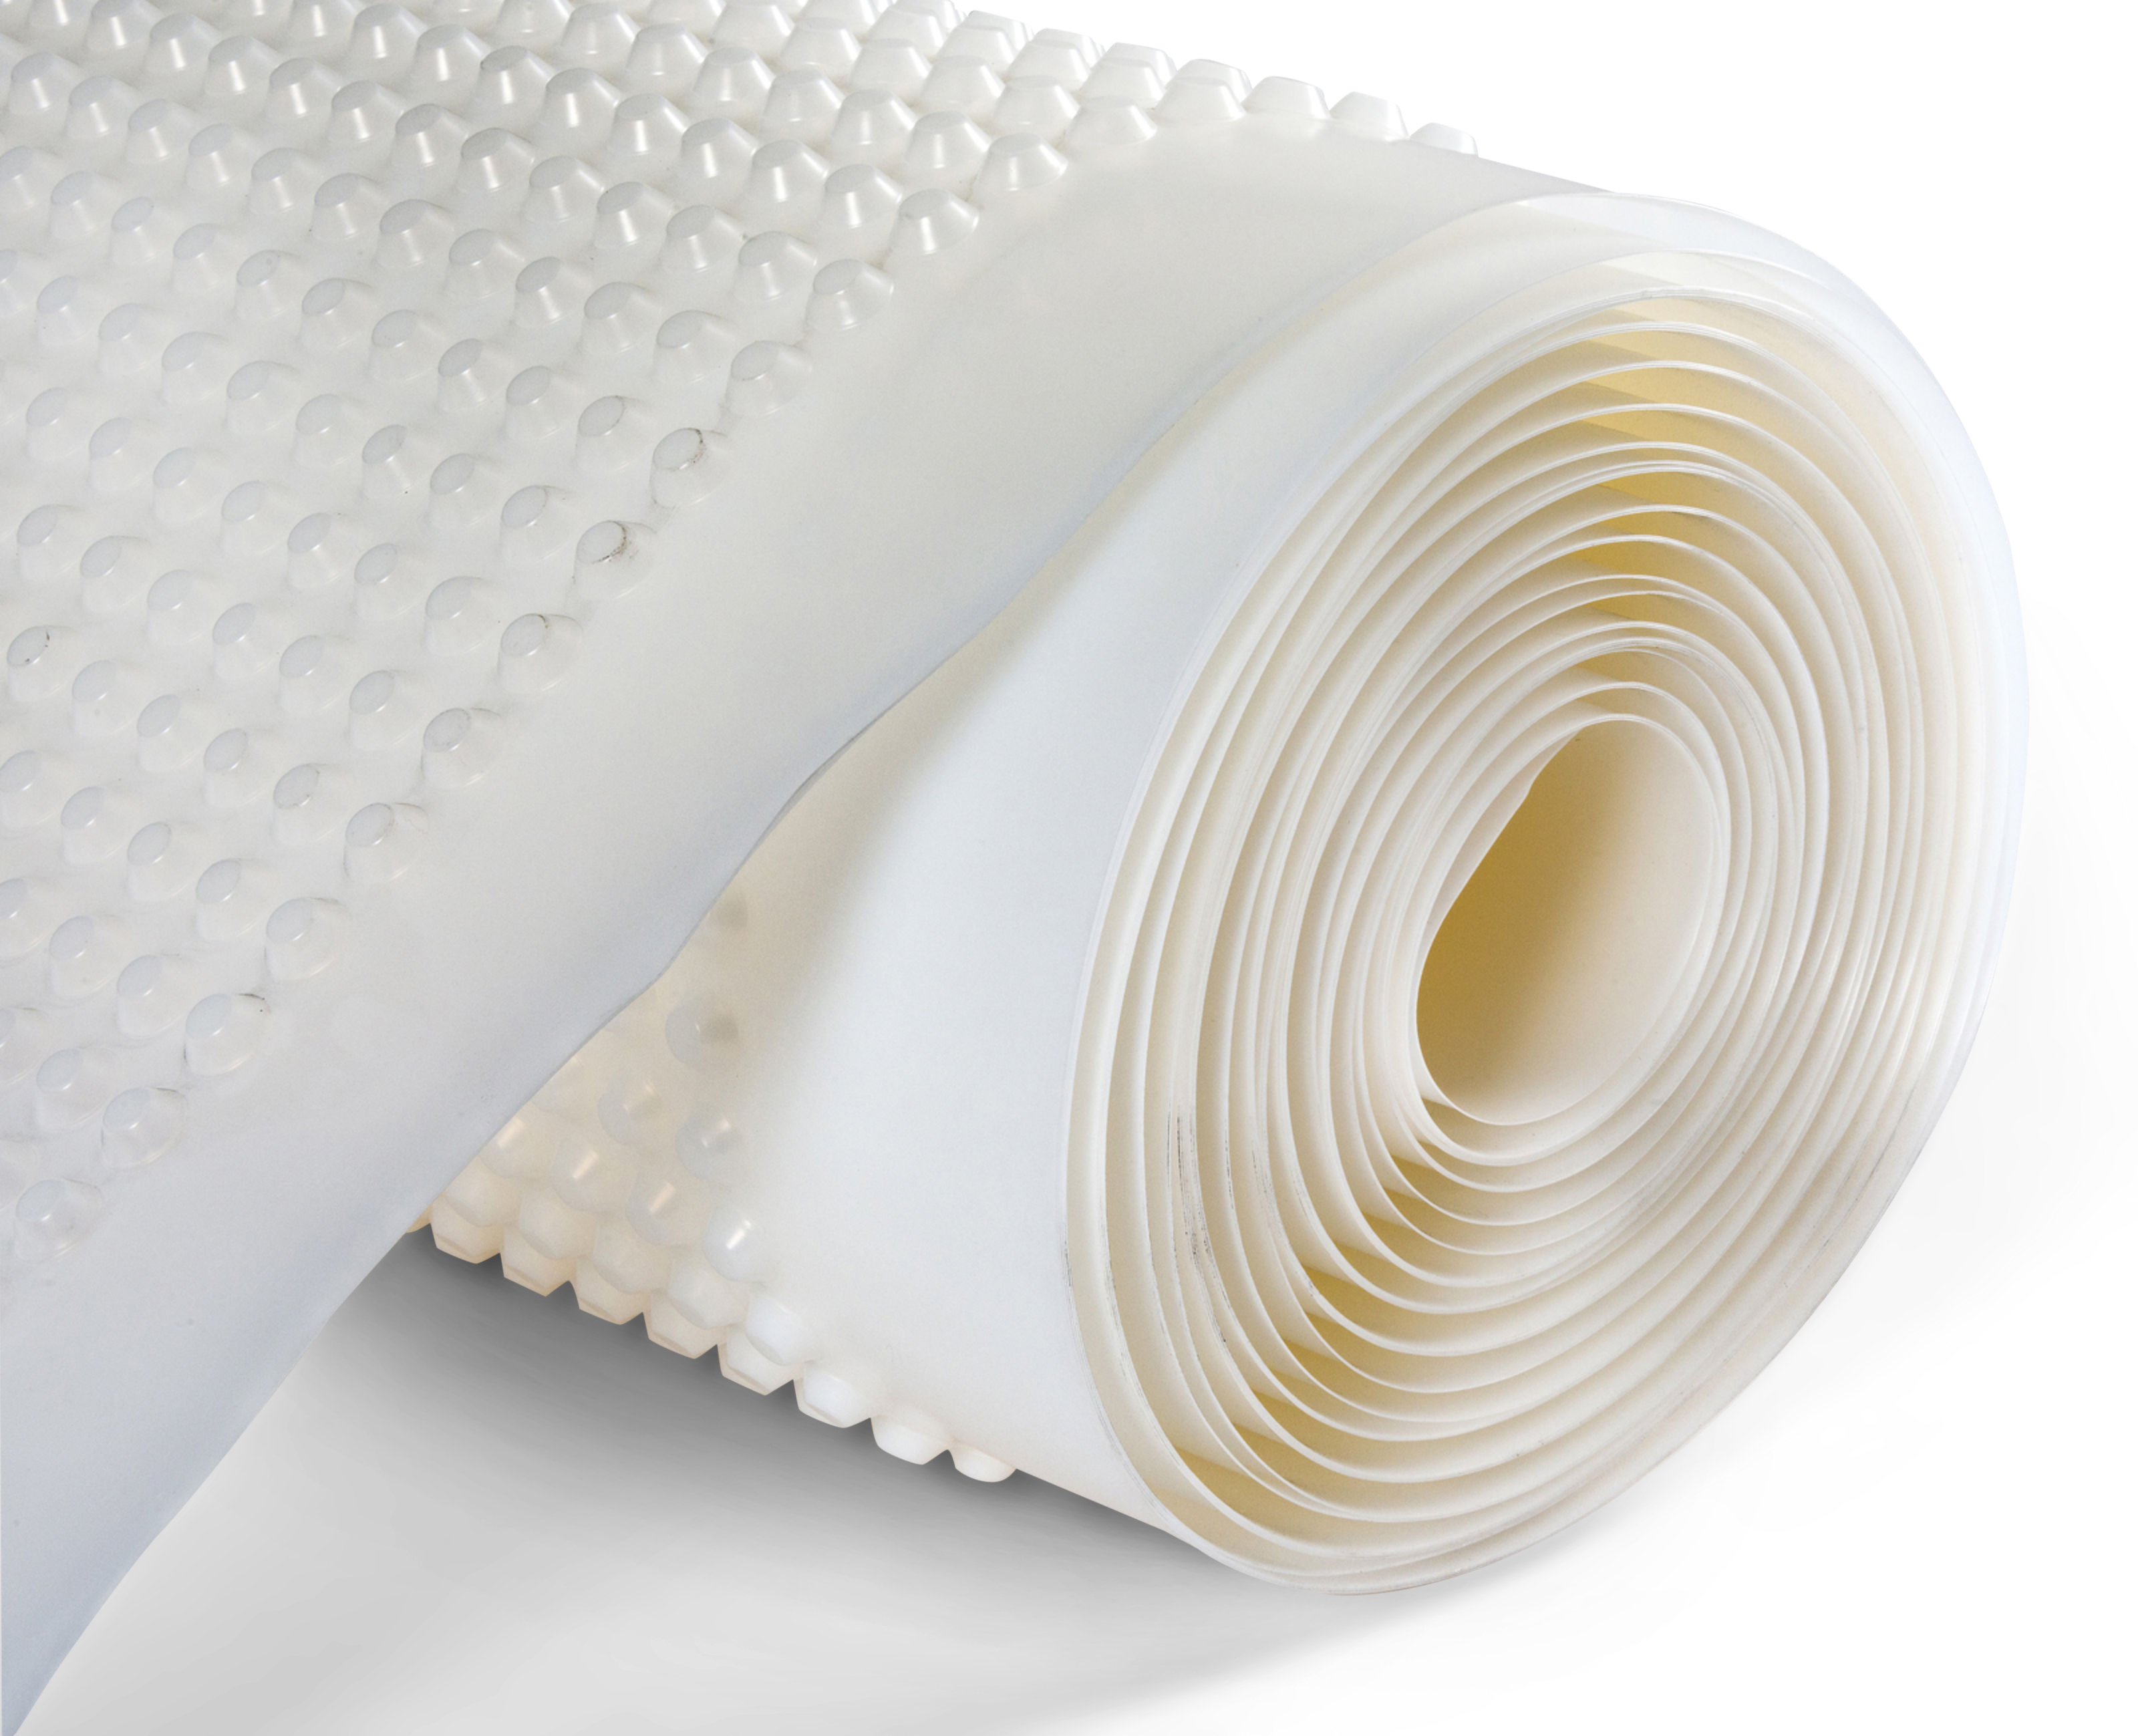 Wall Waterproof Membrane – Baseline 8